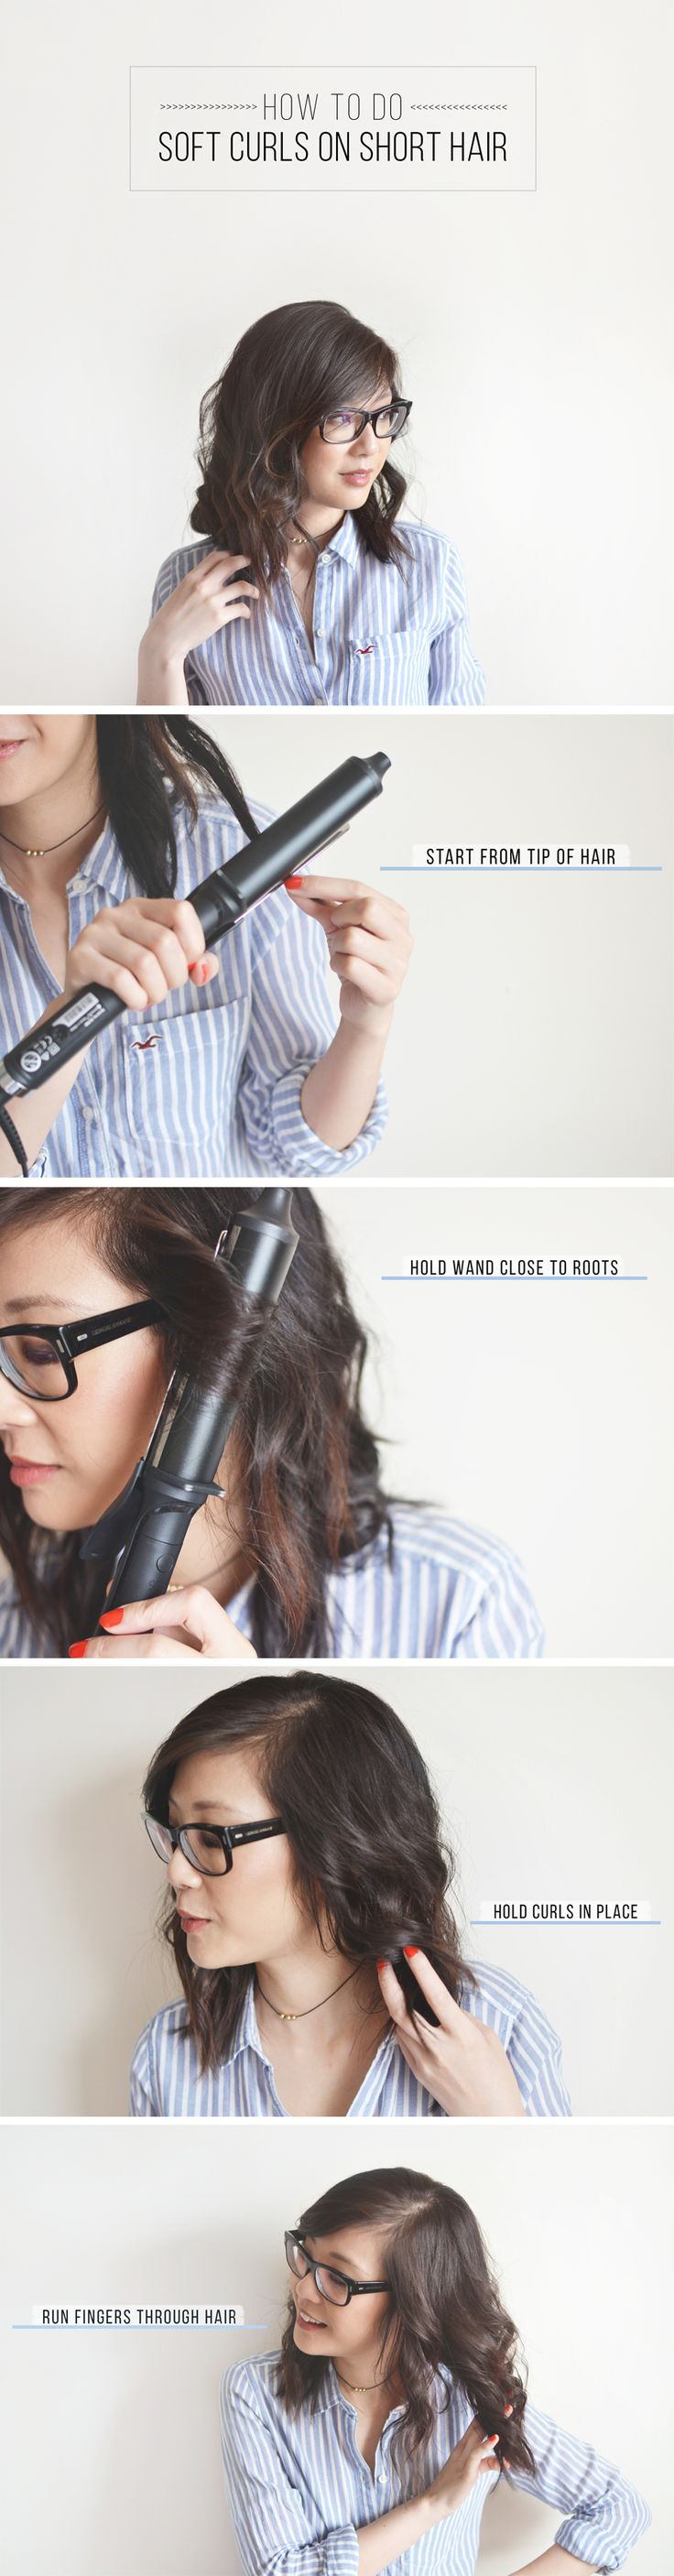 How to do soft curls on short hair // Hair styles for short shoulder length hair